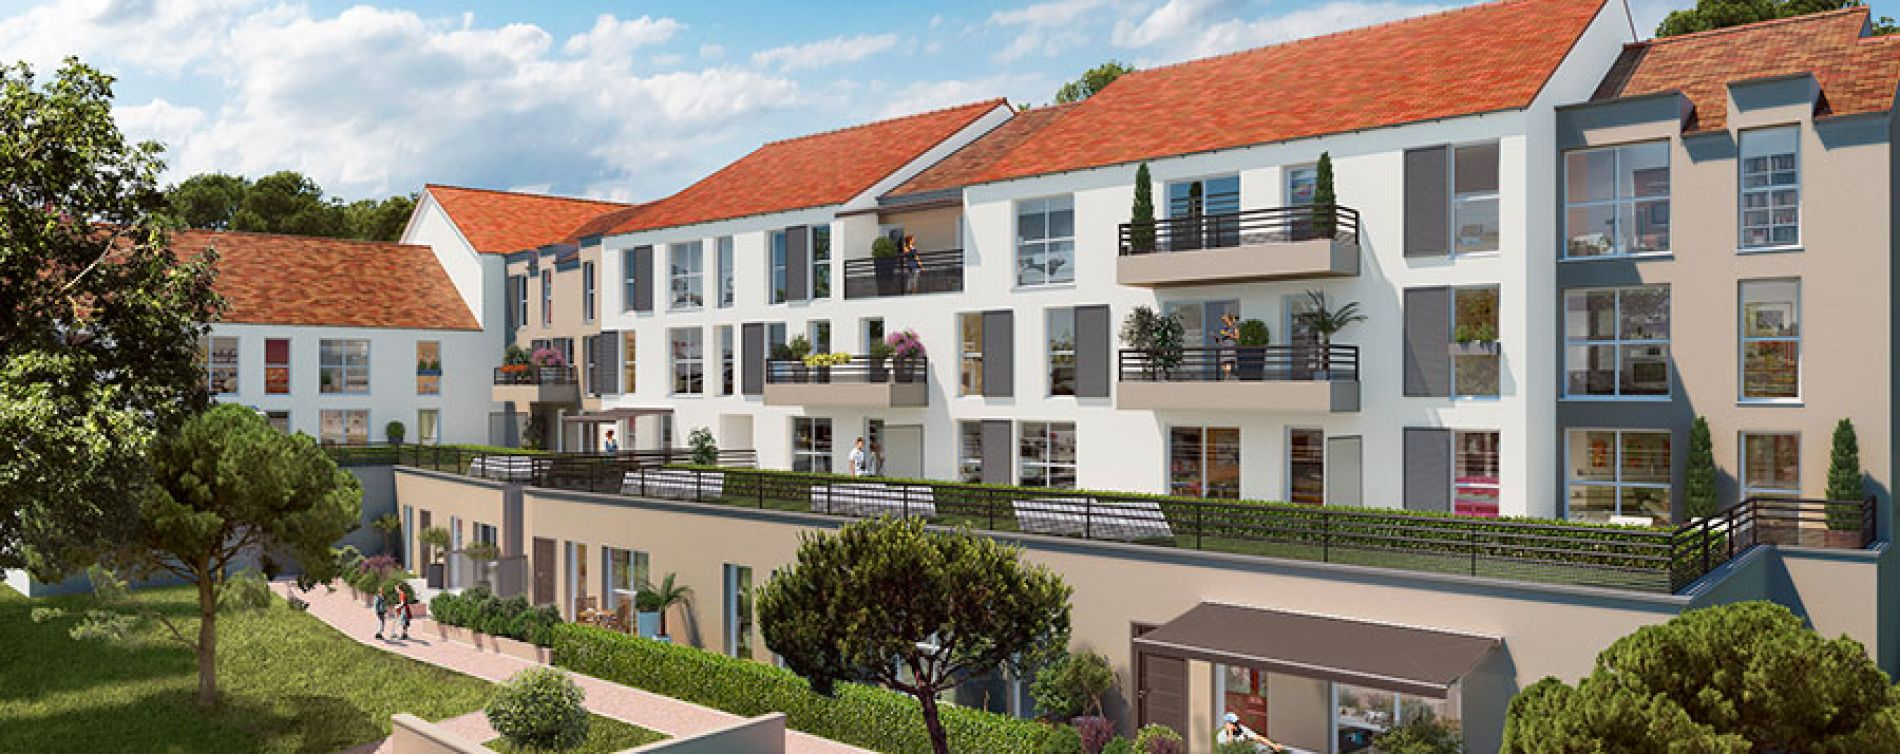 Villa sophia tampes programme immobilier neuf n 212323 for Achat appartement neuf idf